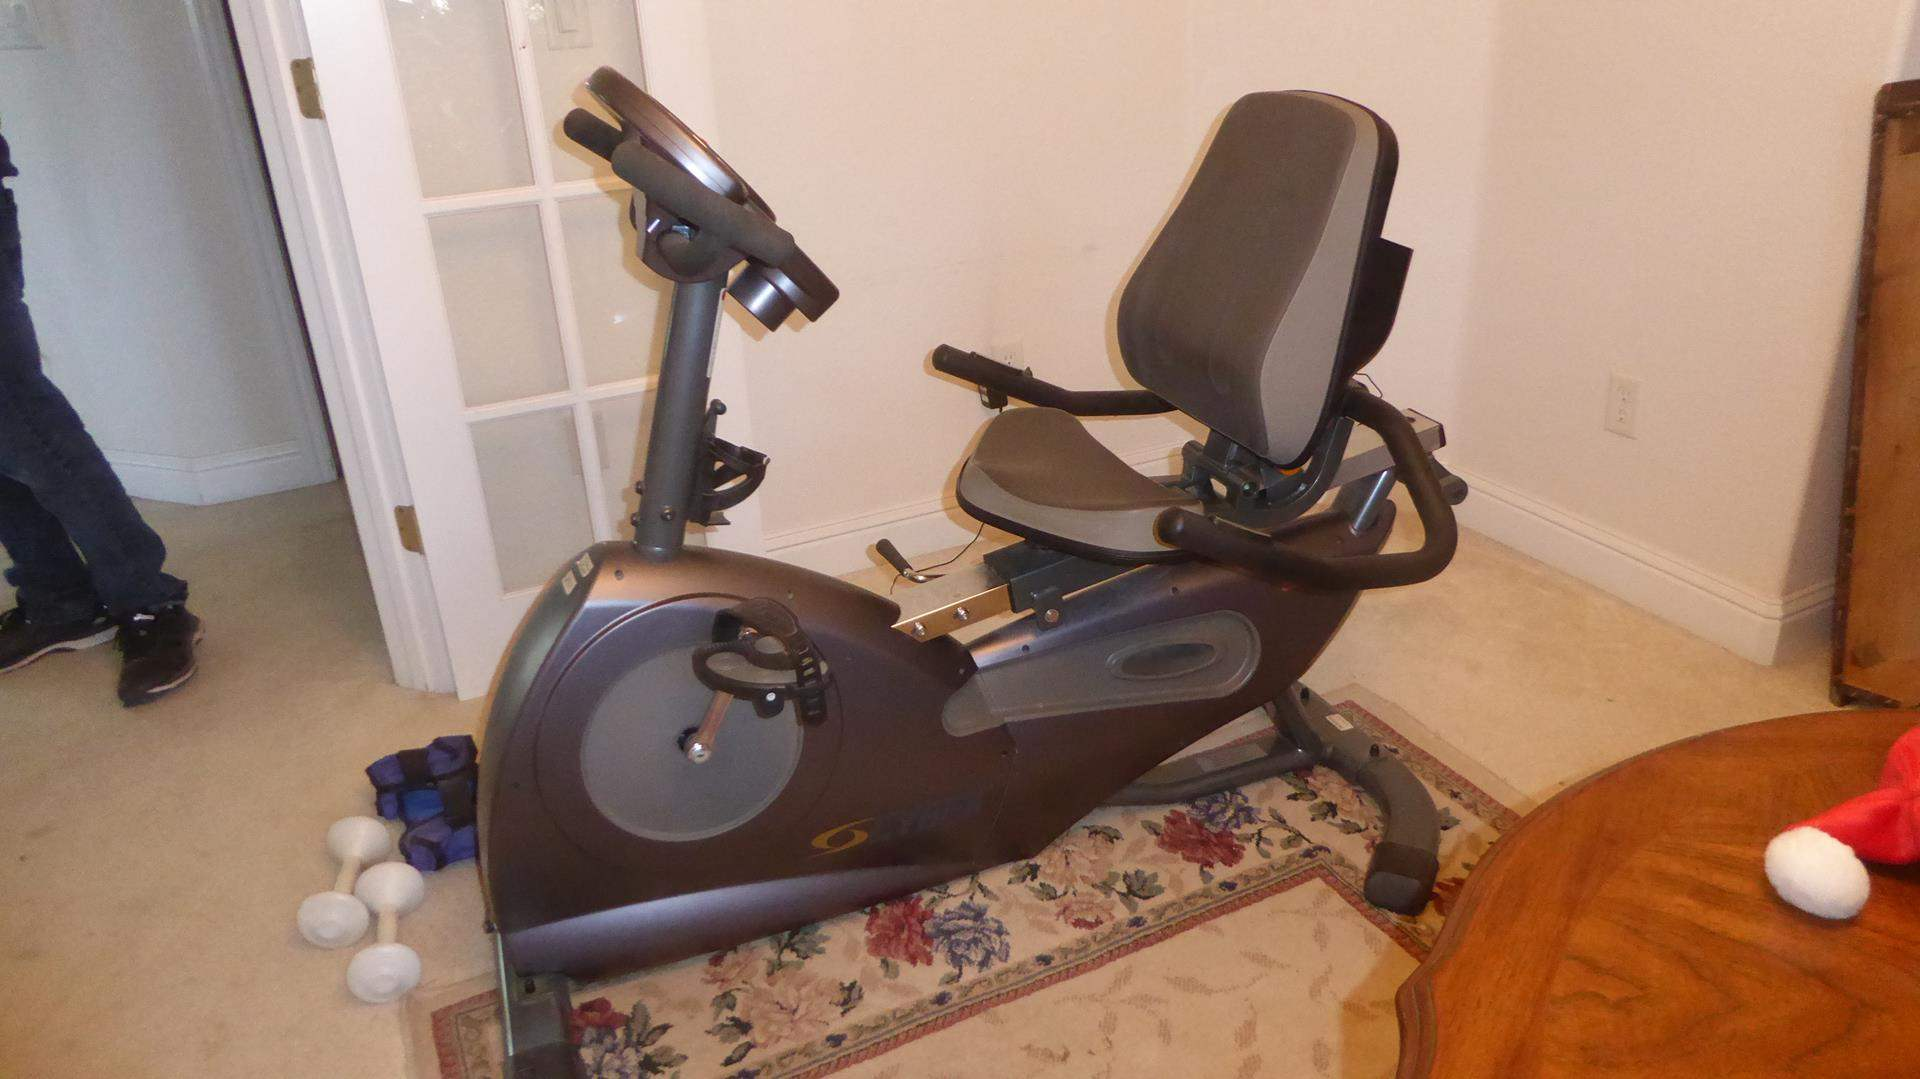 Lot # 127 - Cybex CR 350 Recumbent Bike & Exercise Weights (main image)